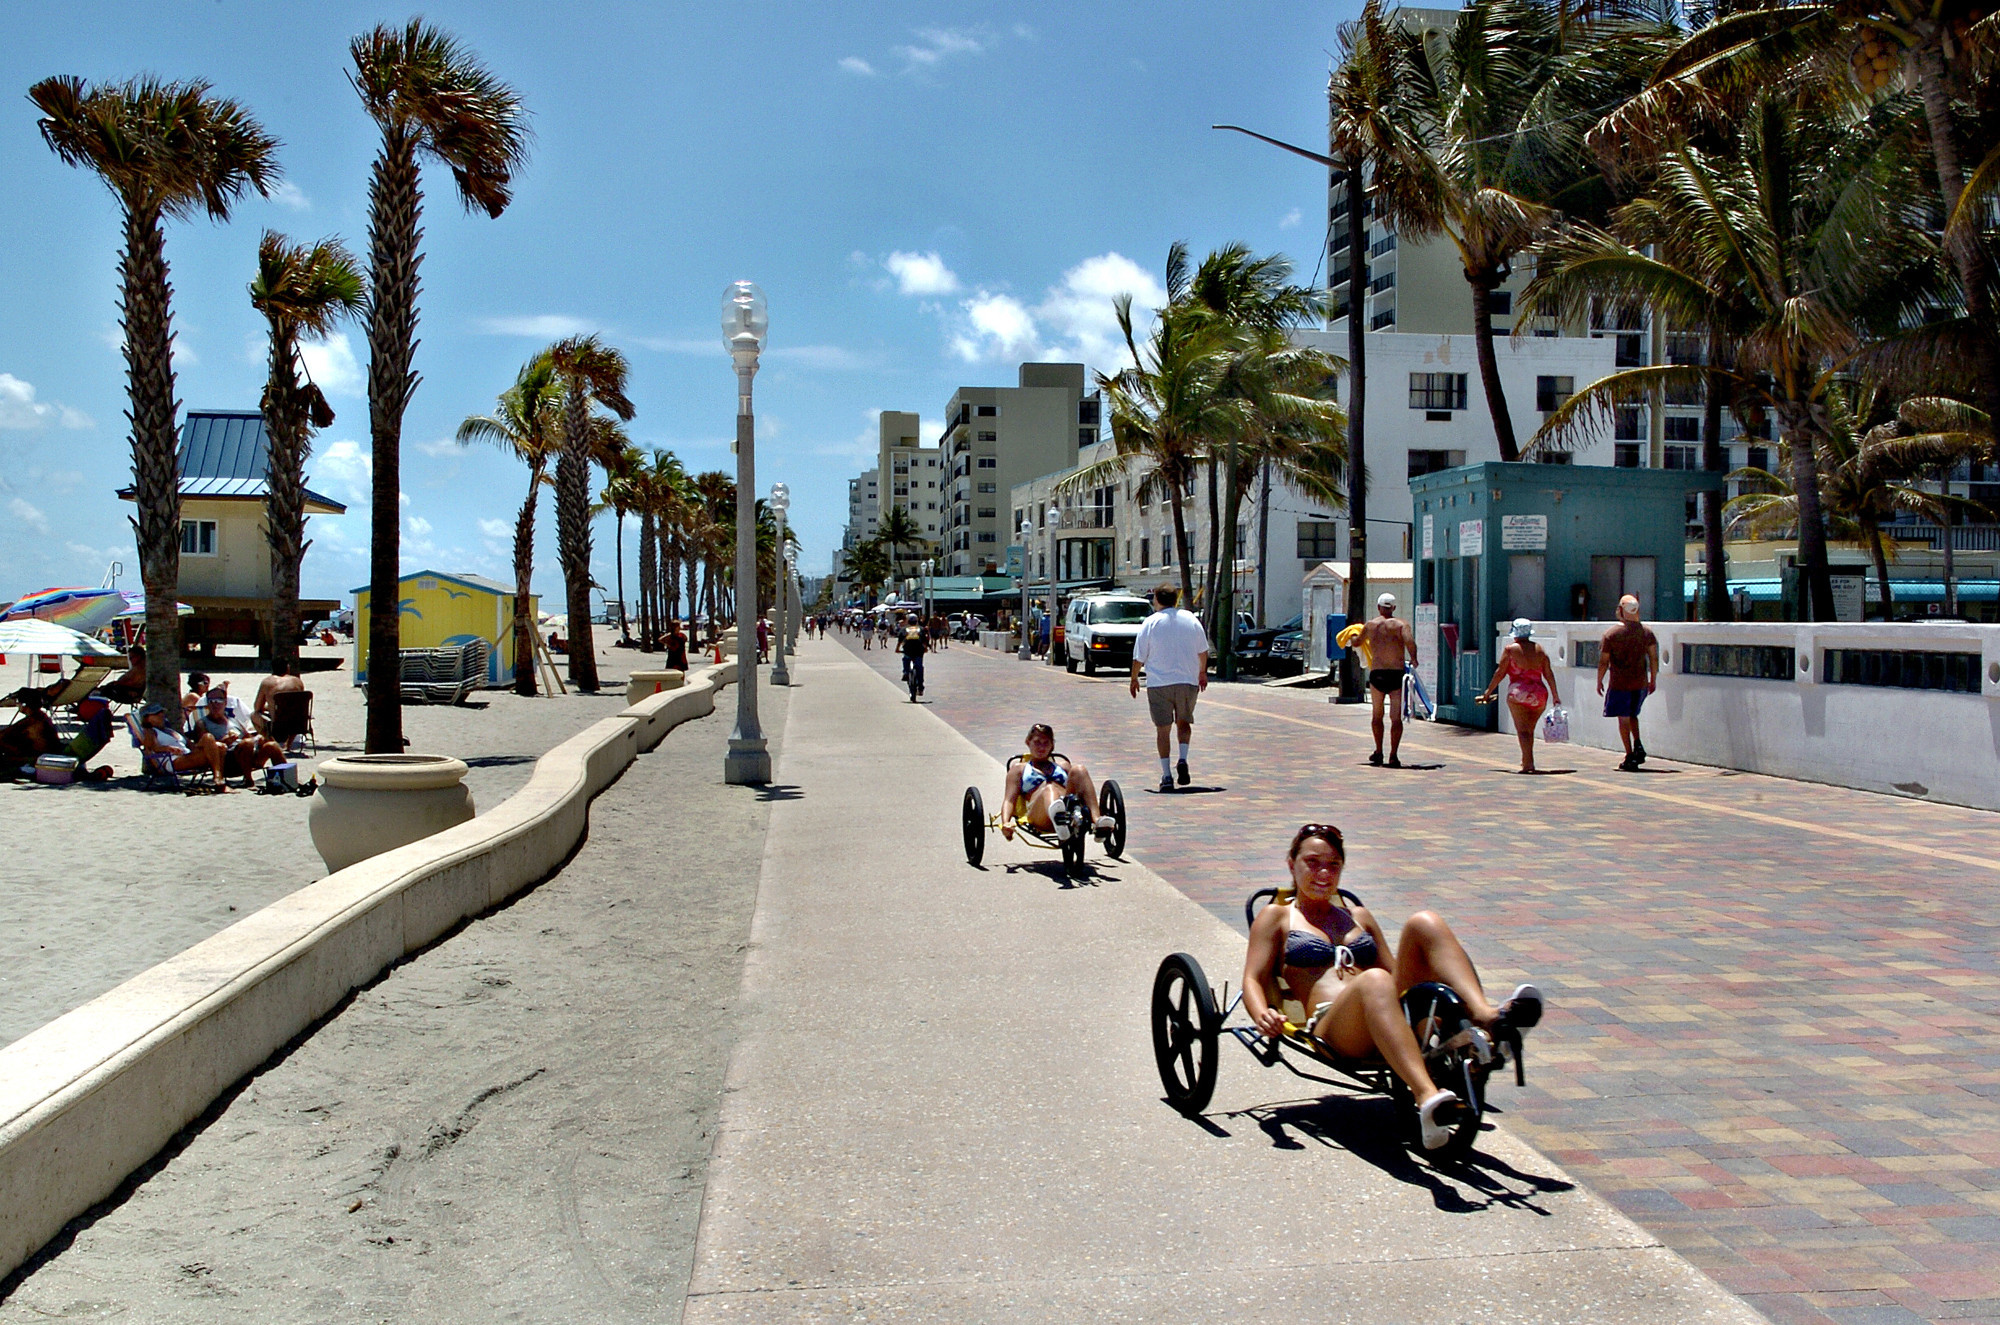 Things every South Floridian should do once - Hollywood Broadwalk